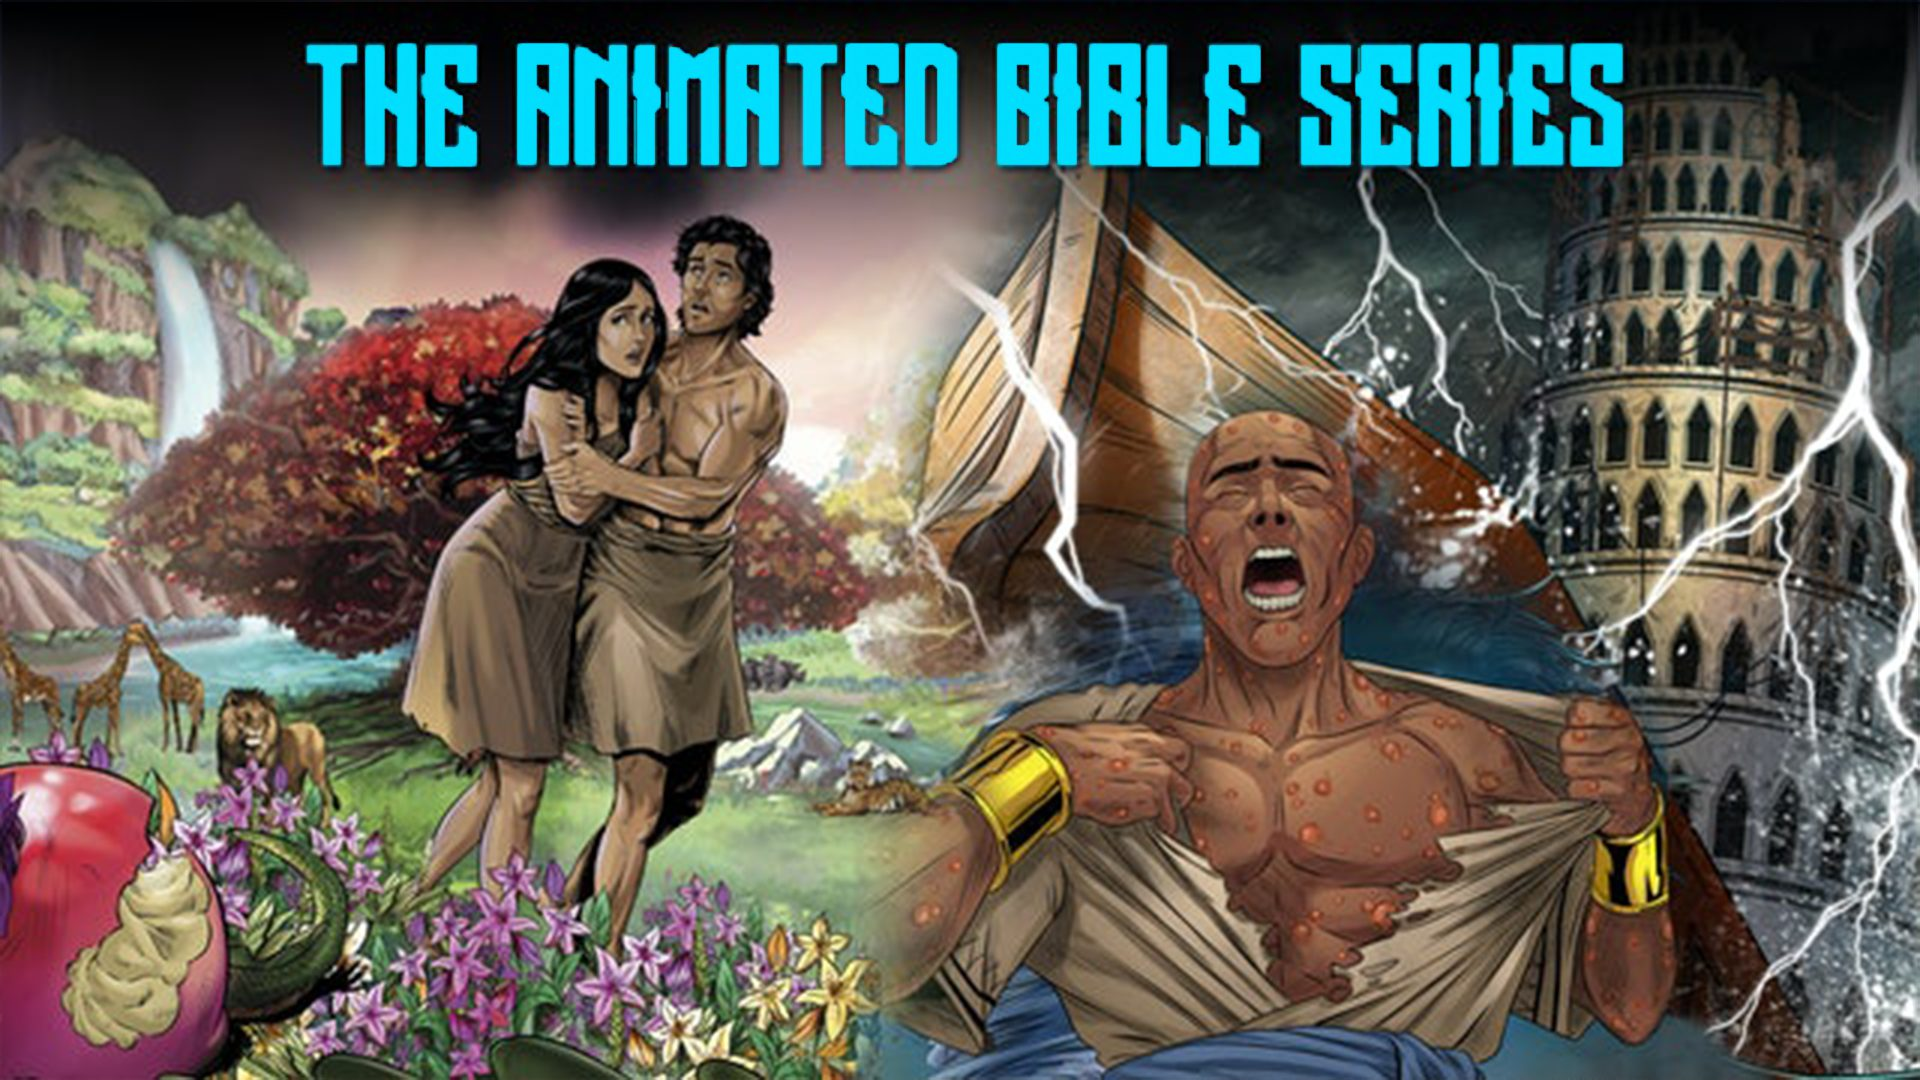 The Animated Bible Series